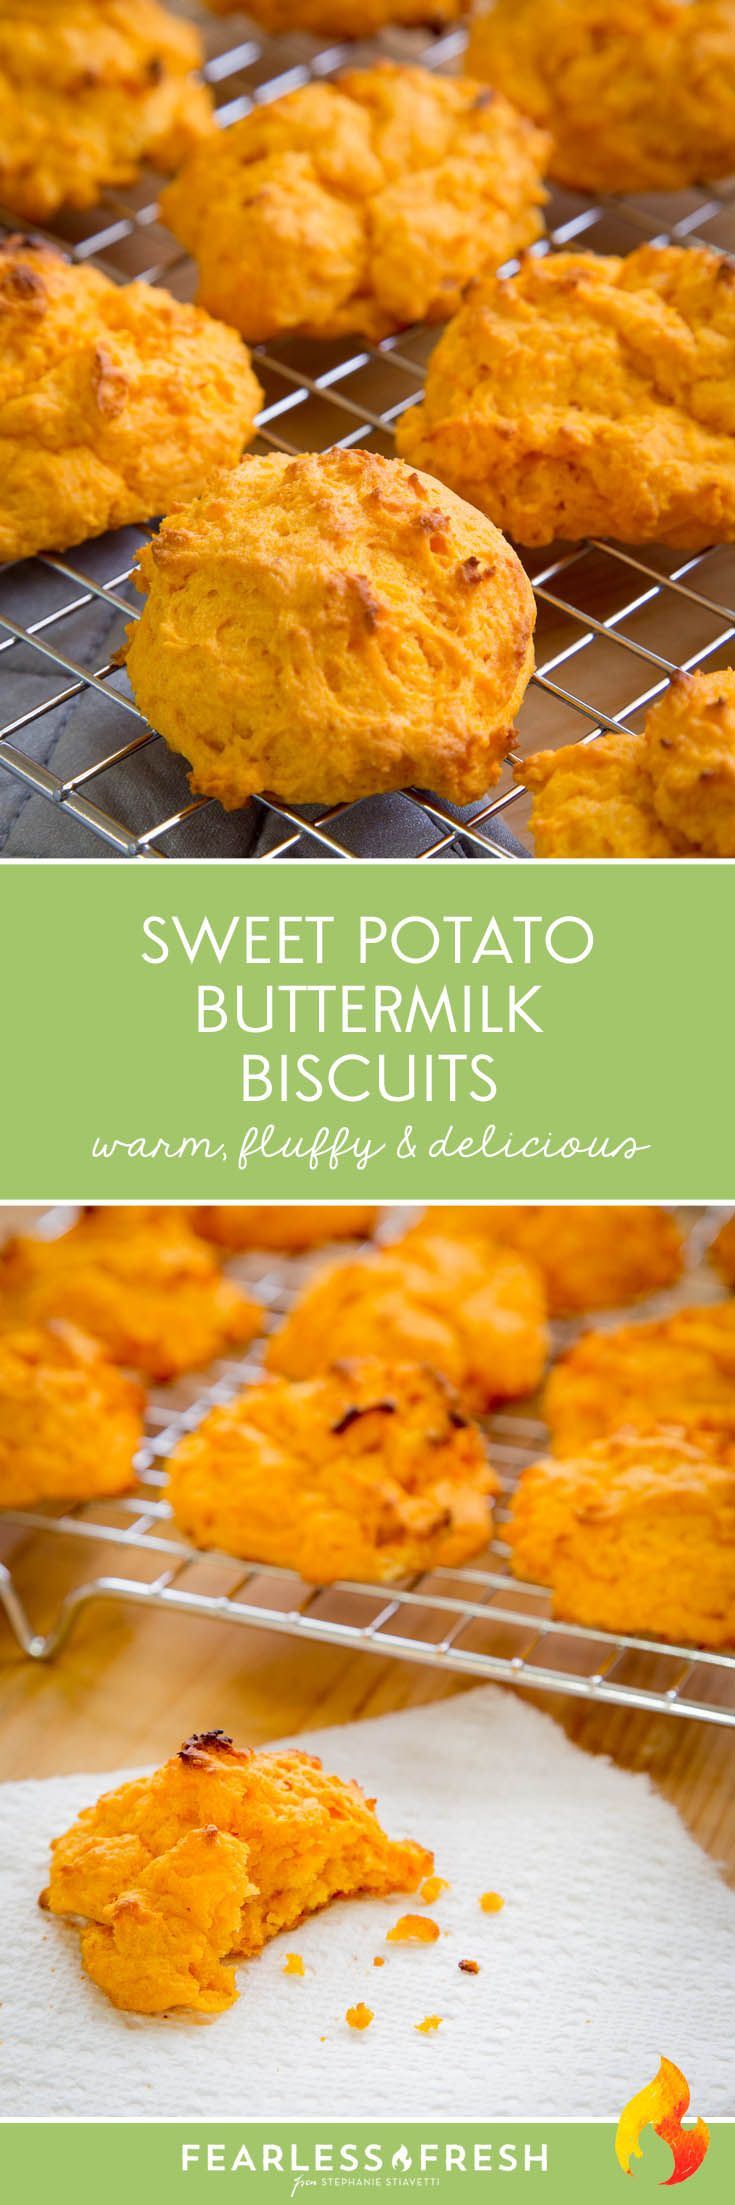 A Lovely Sweet Potato Biscuits Recipe on https://fearlessfresh.com/sweet-potato-biscuits-recipe/